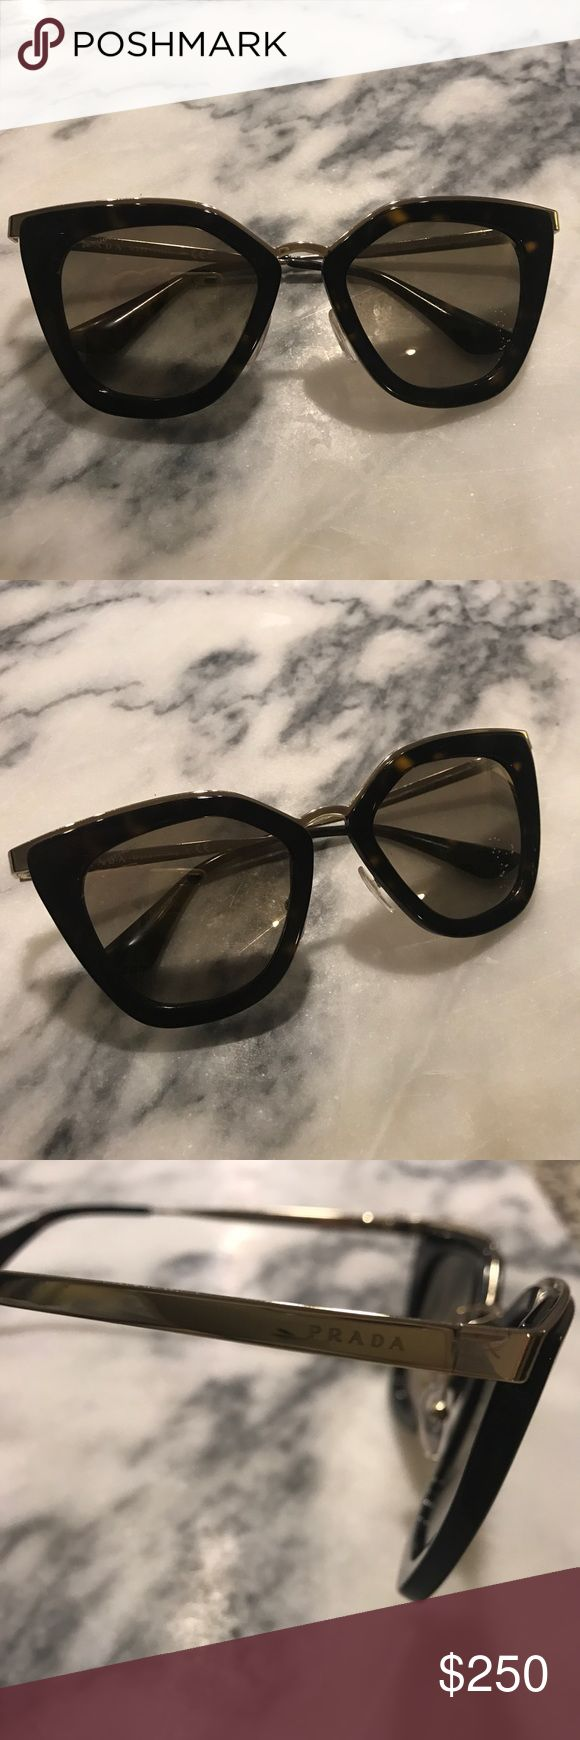 Prada Cinema SPR 53S 2AU-3D0 Tortoise Sunglasses Brand new, never worn. I received as a Christmas gift and just don't love how they look on my face and hoping to purchase a similar pair after selling these.  As you can see in photos there are absolutely no marks, scratches or dings.  They're currently listed on Prada website for $400. This is the Gradient Anthracite Gray to Cammeo Beige Lenses with an acetate frame front in tortoiseshell. Measurements 52-21-140mm.   Comes with case, cloth…